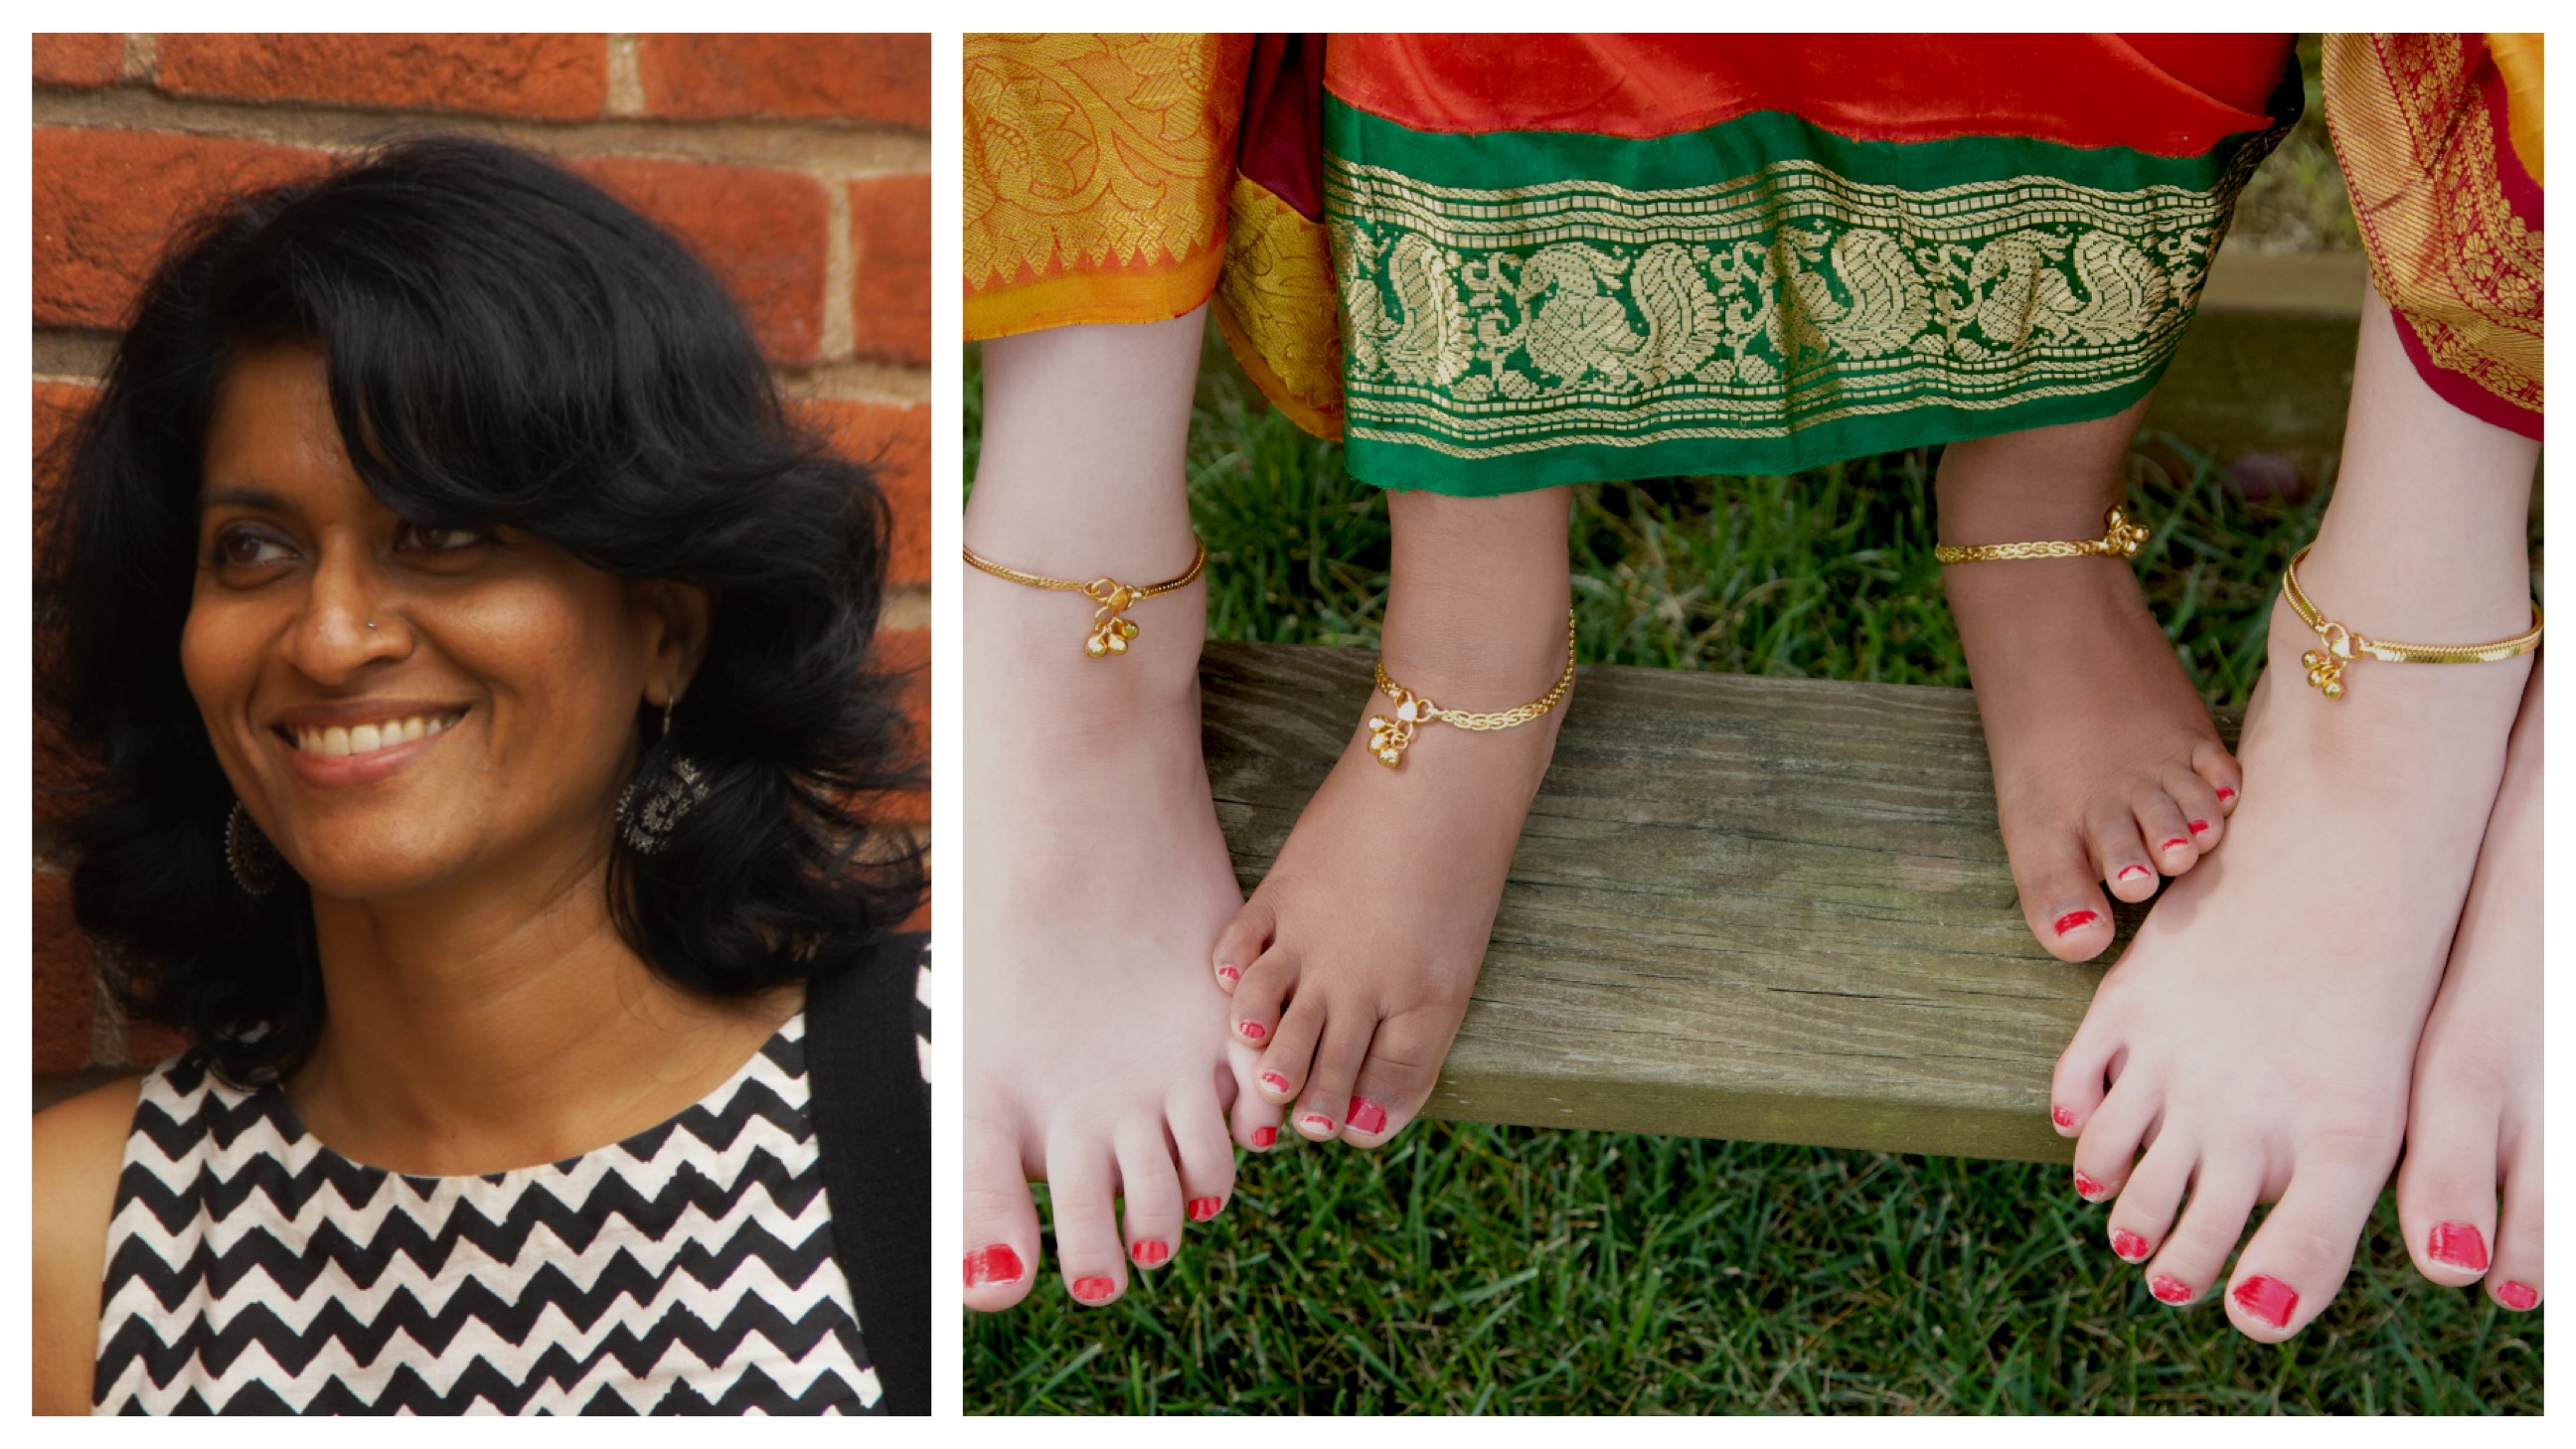 A South Asian woman with short curly hair looks off camera on the left; on the right is an image of girls' feet with brown and pale skin tones, wearing saris.